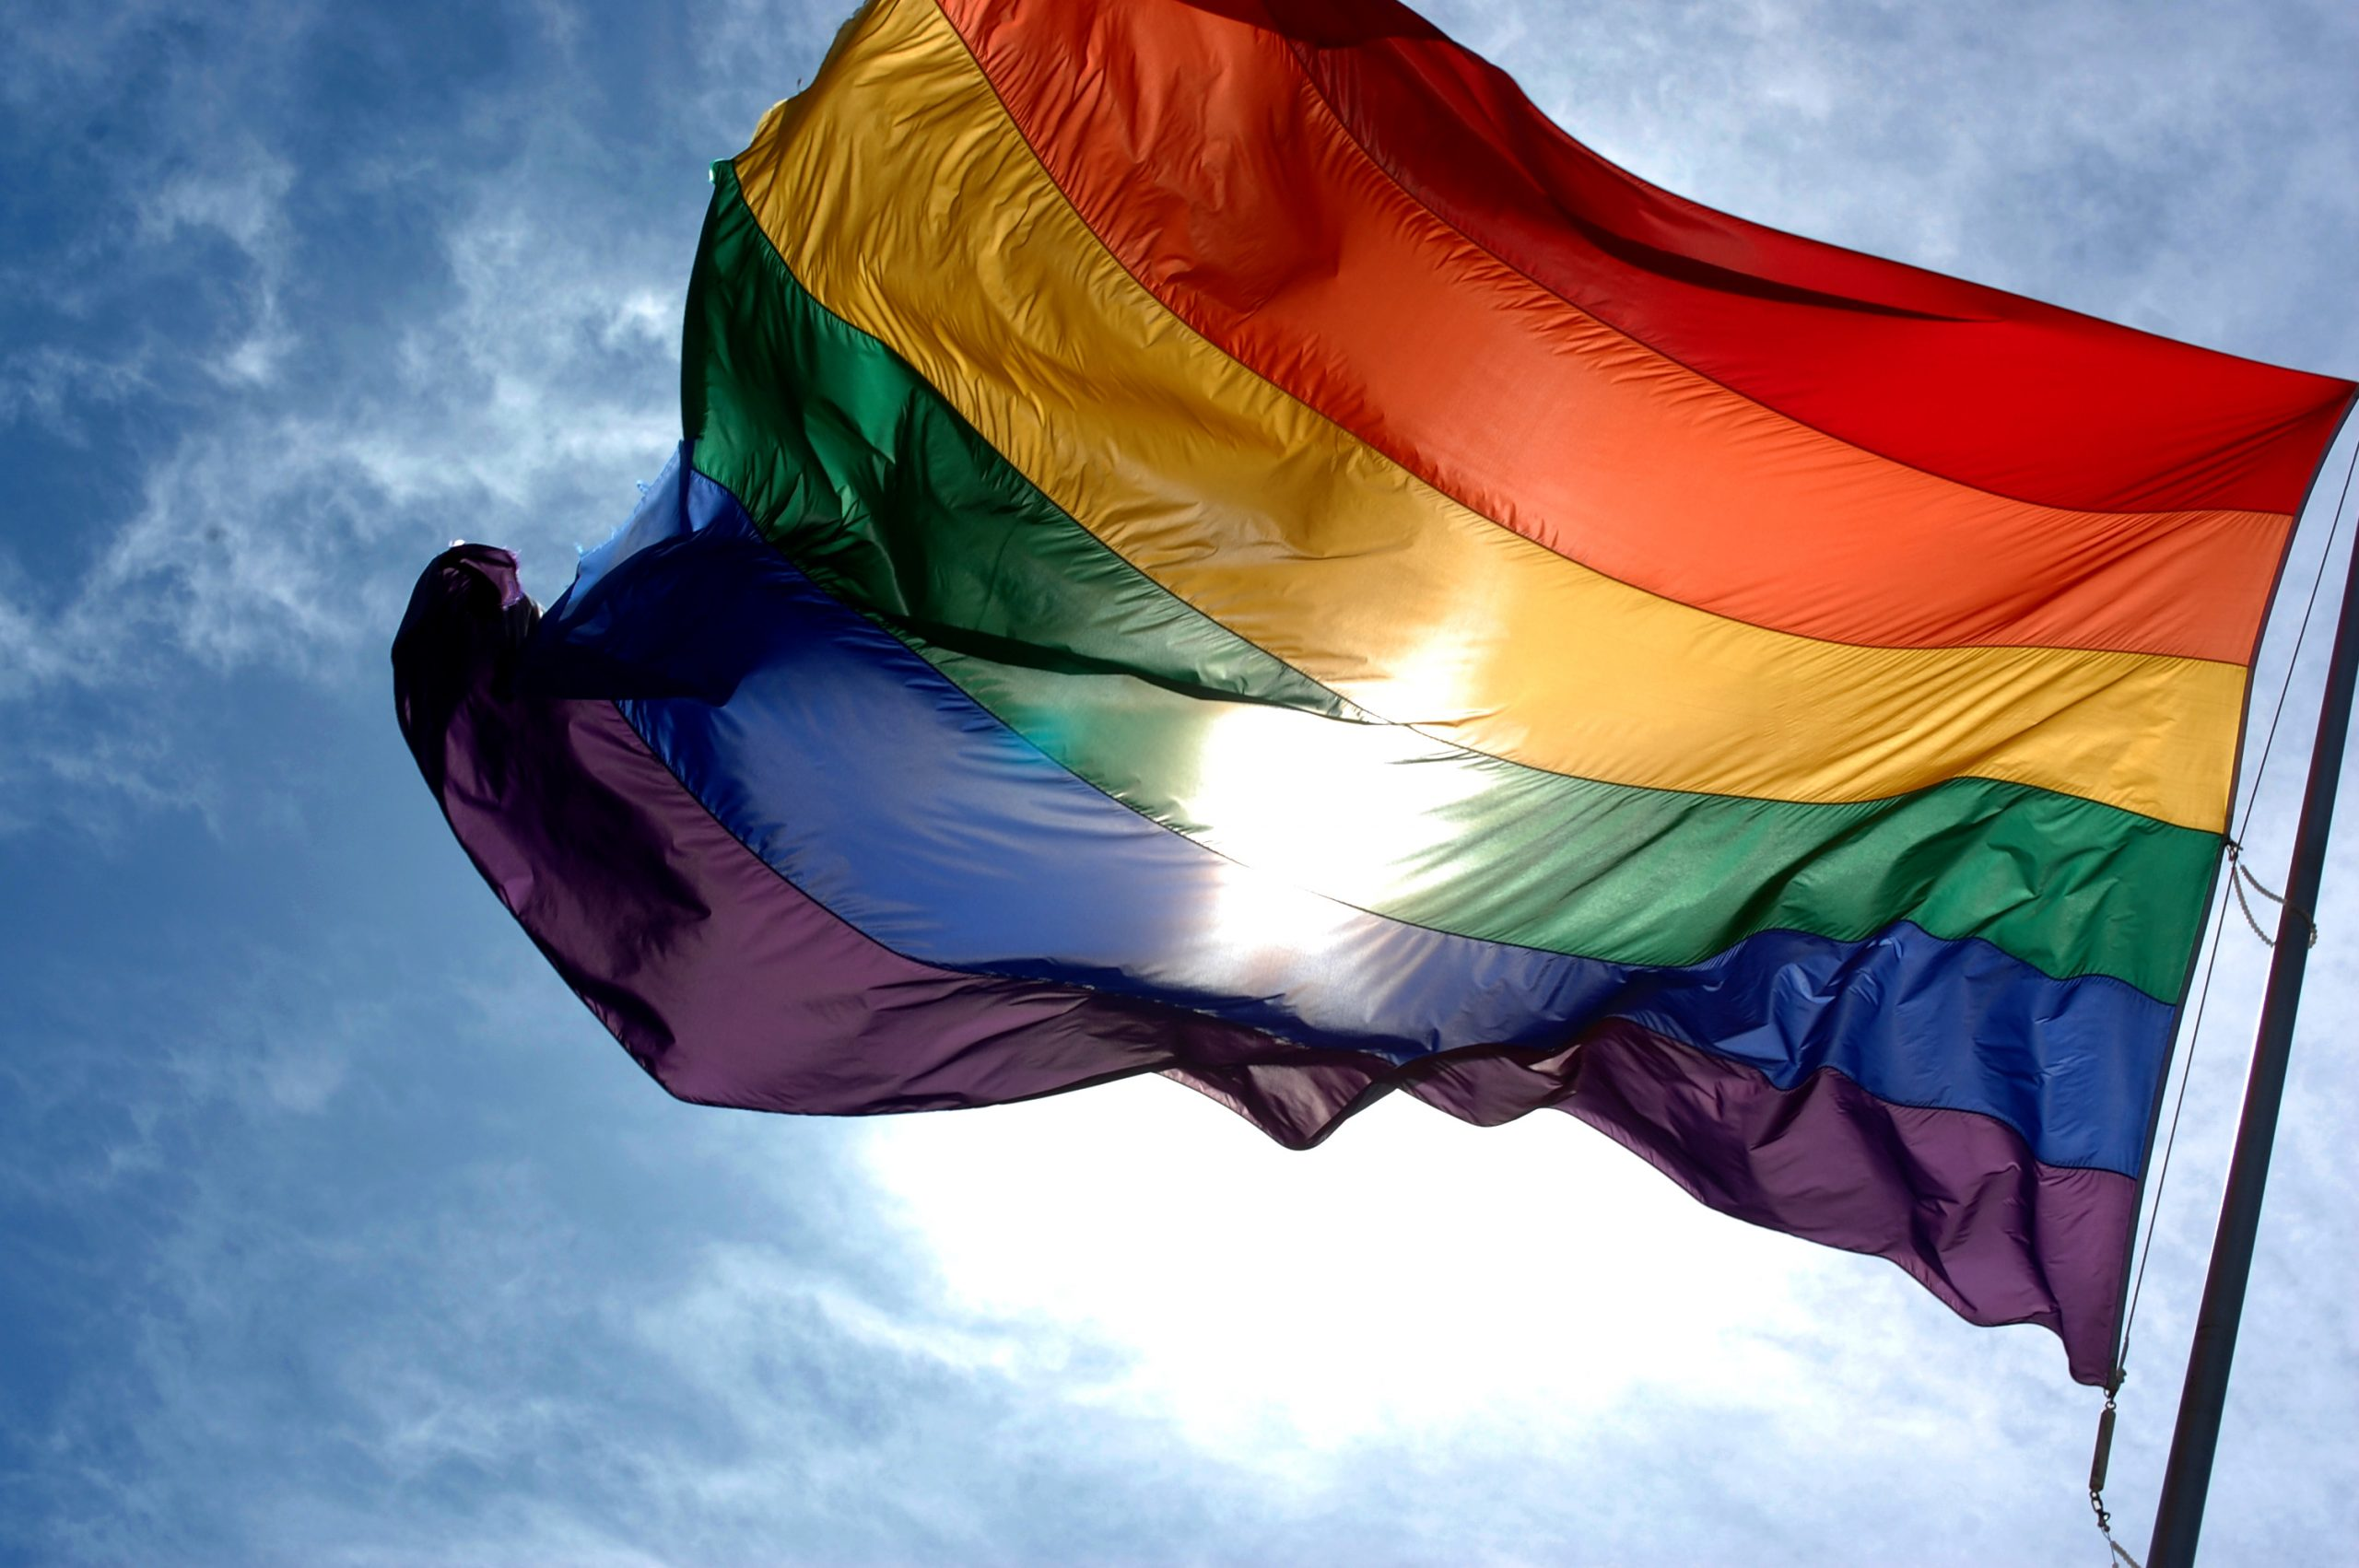 Department of Health: LGBTQ Health Equity Essential to ...